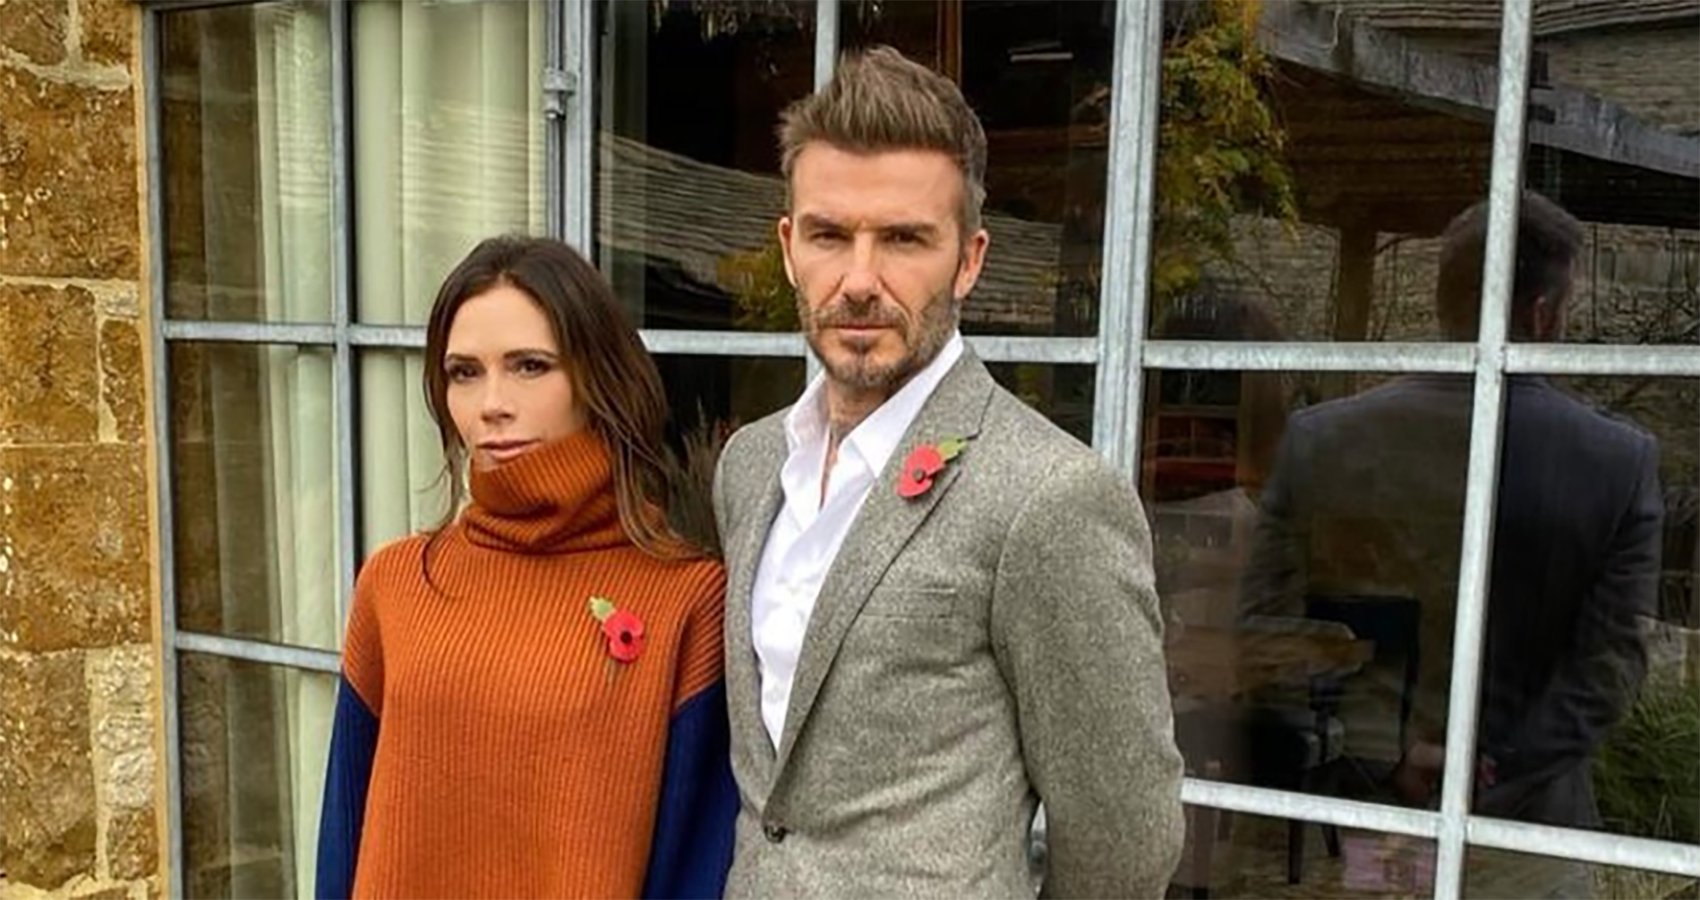 Victoria Beckham Makes Fun Of Hubby For His Fashion Choice In IG Post